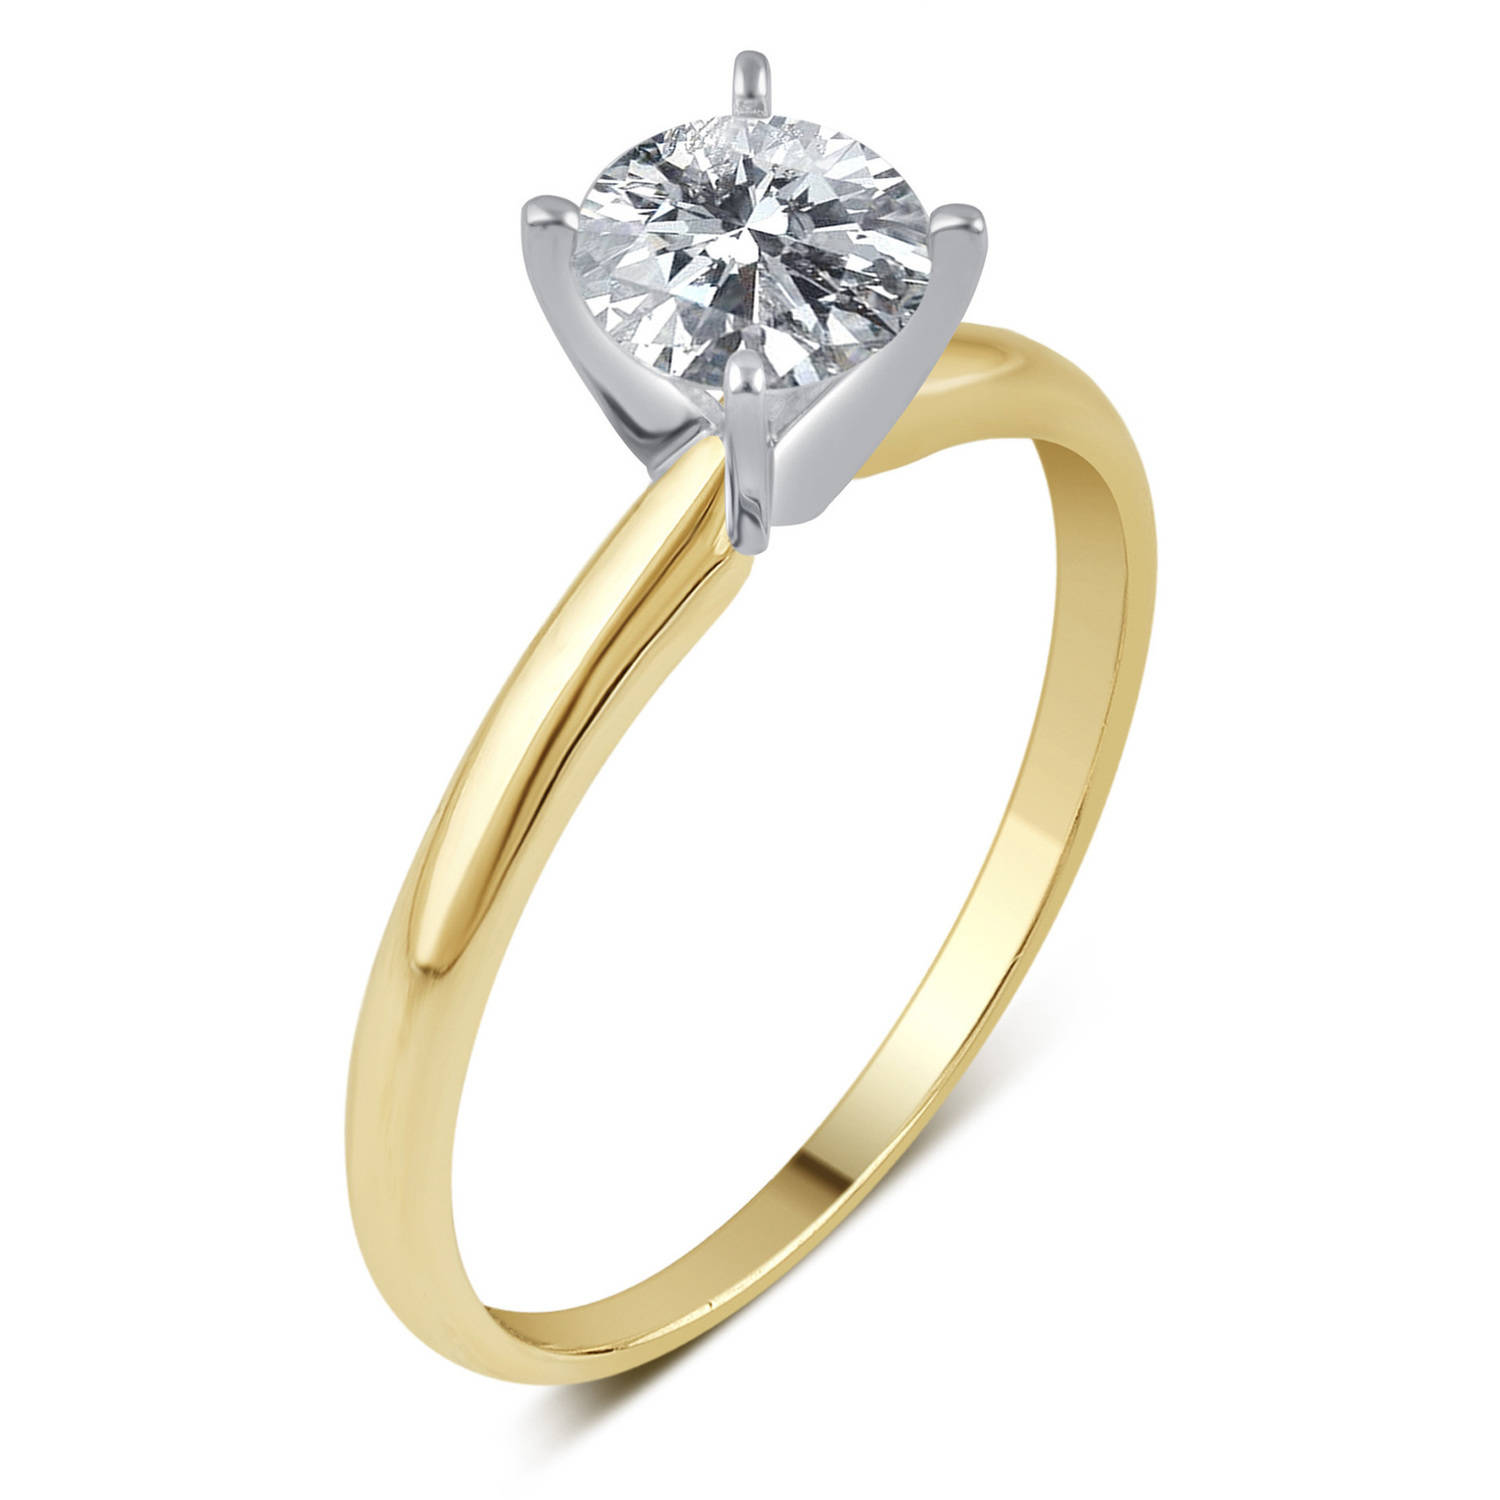 1 2 Carat T.W. IGL Certified Round Solitaire Diamond 14kt Yellow Gold Engagement Ring by Generic